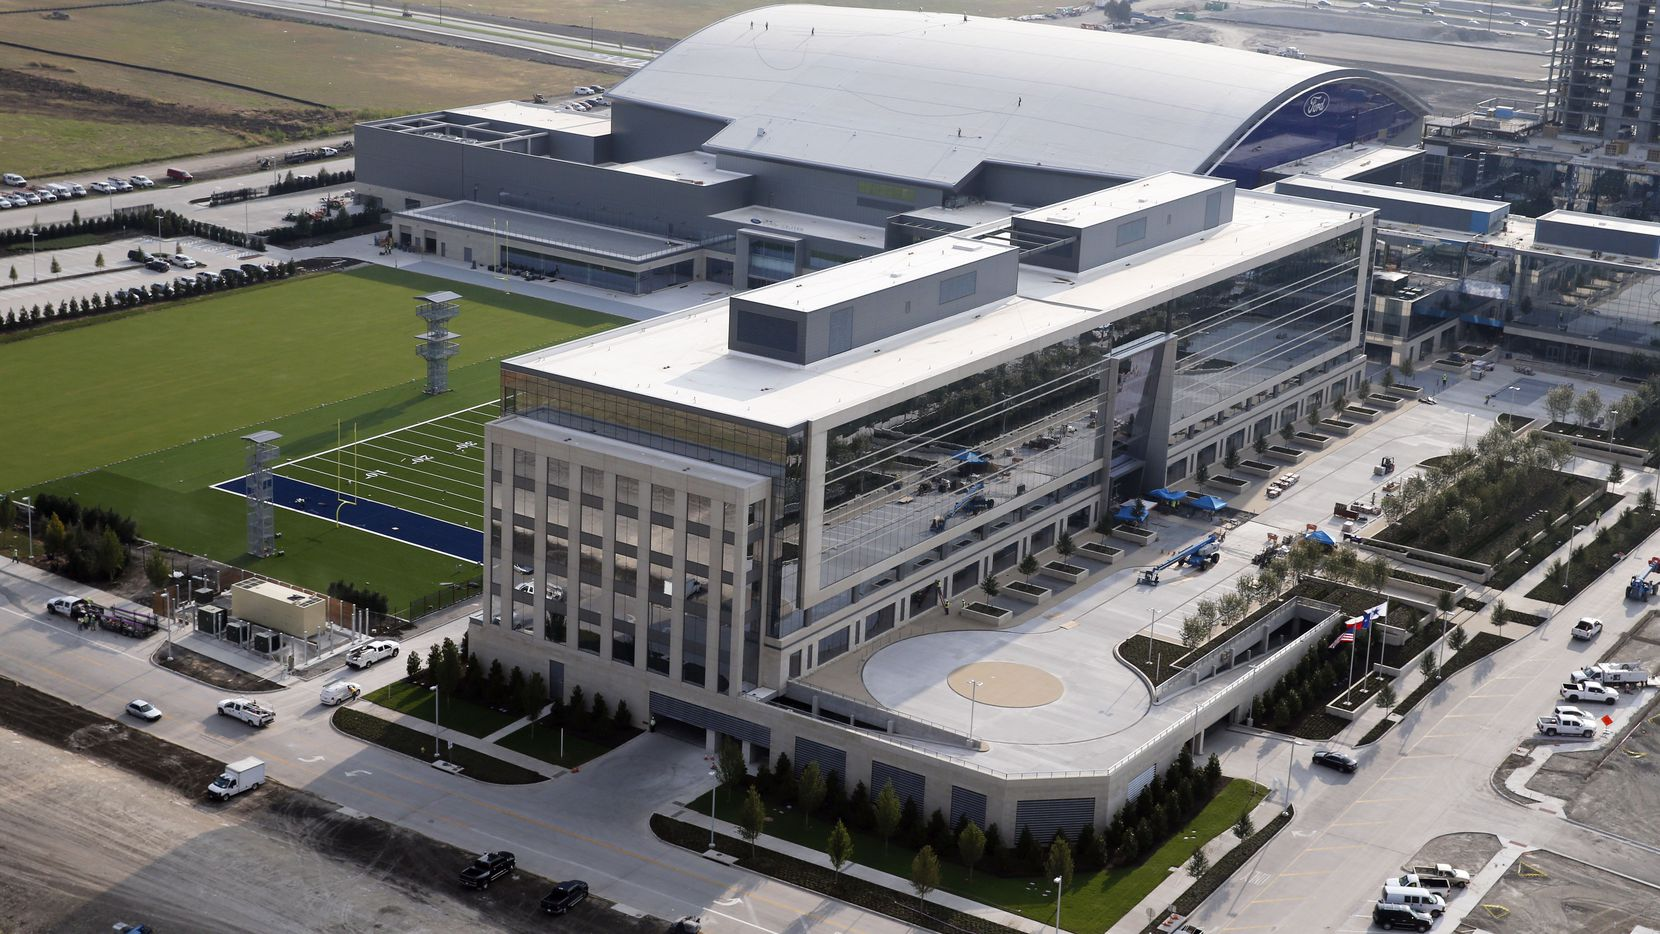 Dallas Cowboys' The Star in Frisco is getting a new office building that could house offices for Keurig Dr Pepper.